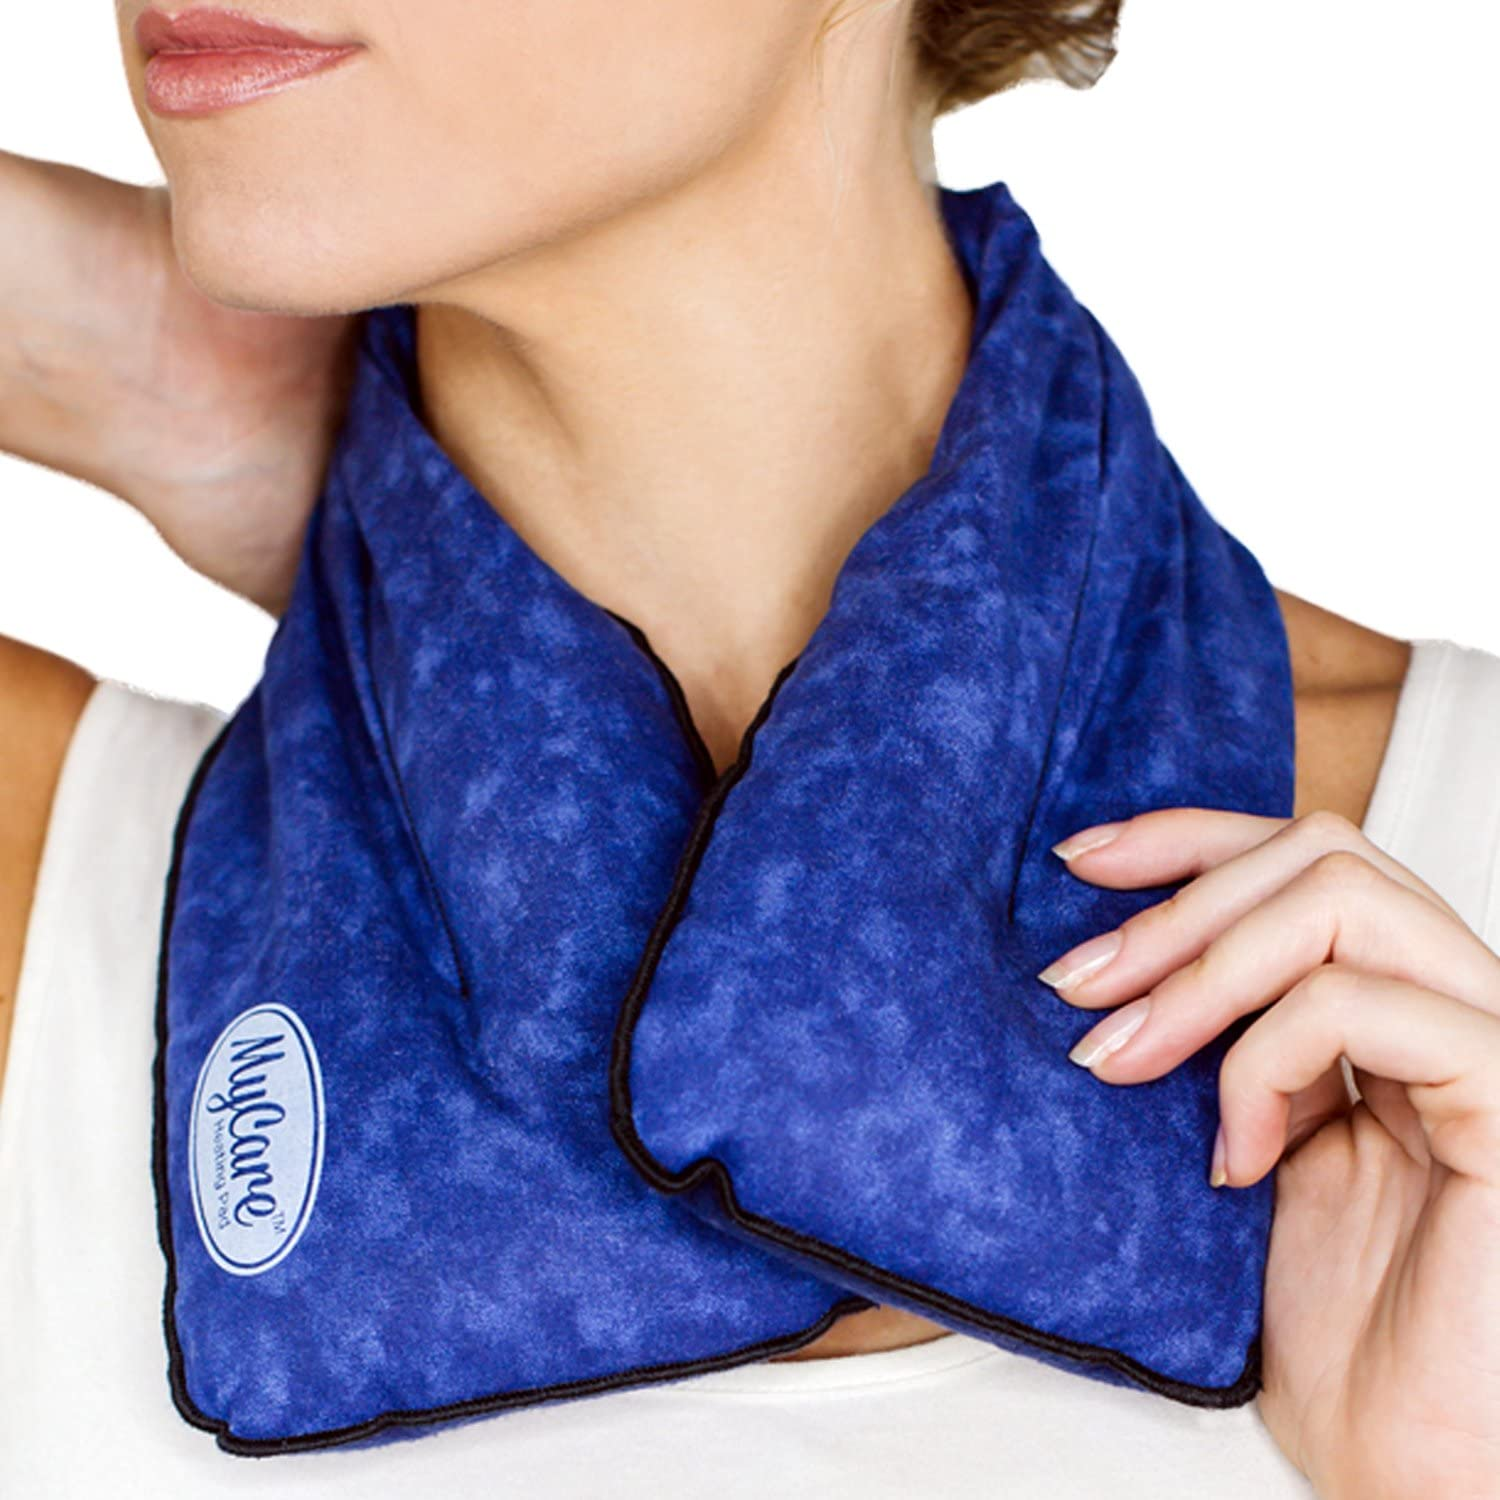 MyCare Heating Pad - Neck Wrap for Stiff & Sore Neck Pain Relief - Natural Rice Neck Pack That Provides Moist Heat & Soothing Cold Made with Care in The USA (Blue)